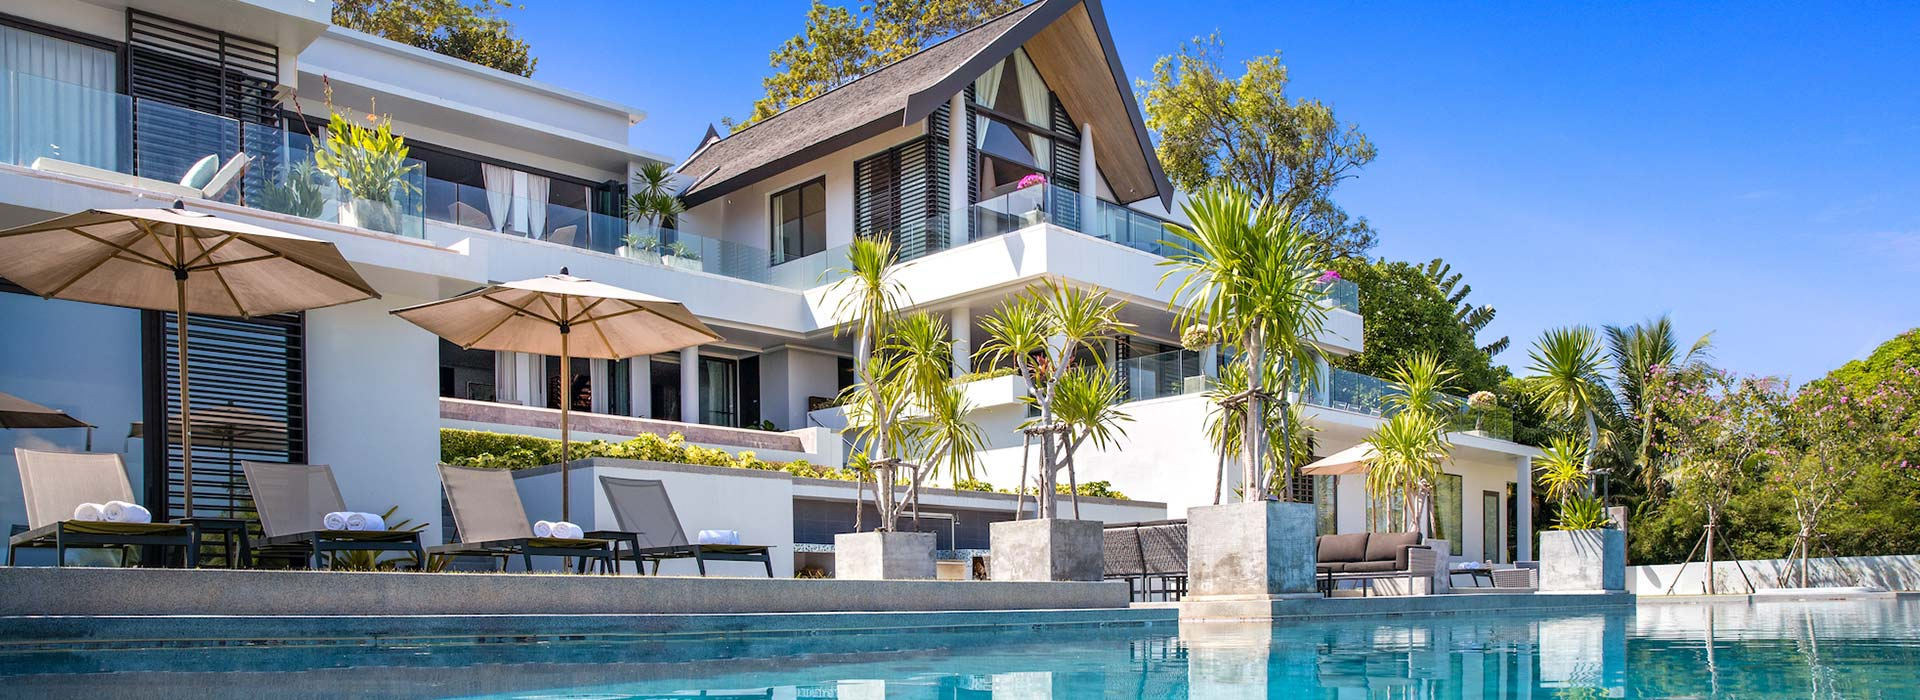 Villa Alchemy 10 Bedrooms<br>with private pool